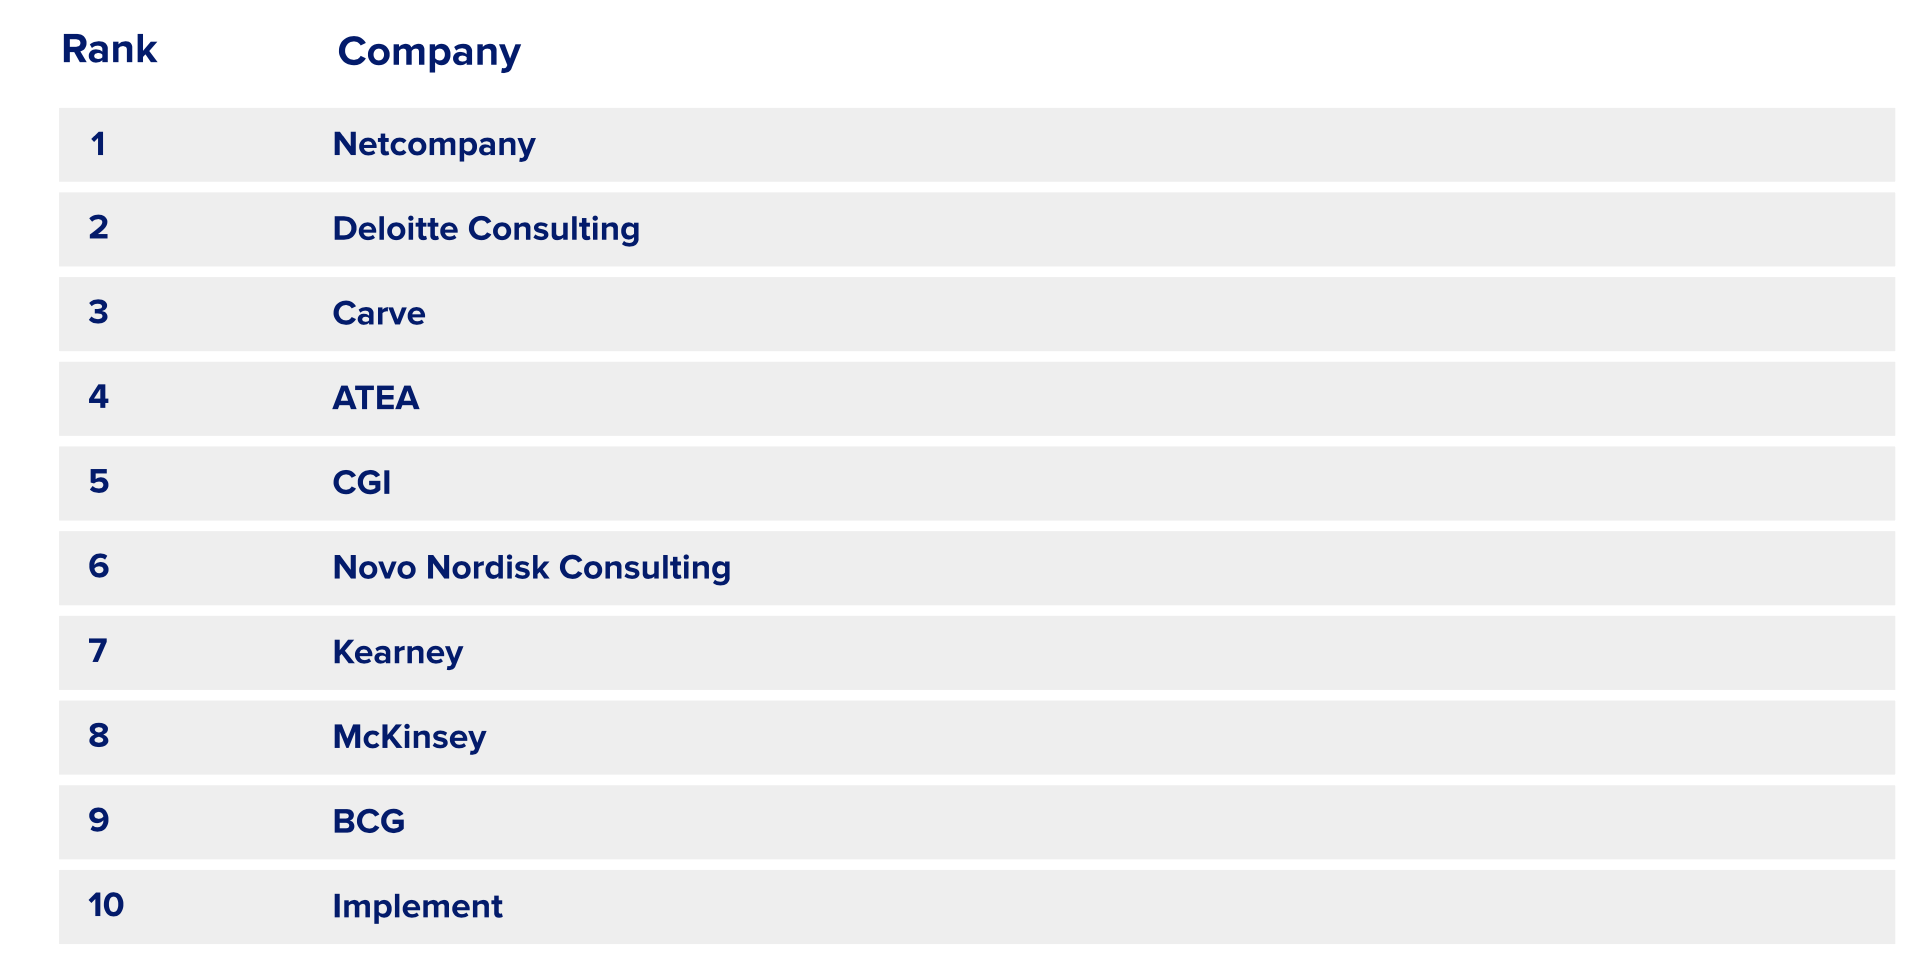 10 Most Suitable Consulting Firms to Work For in Denmark